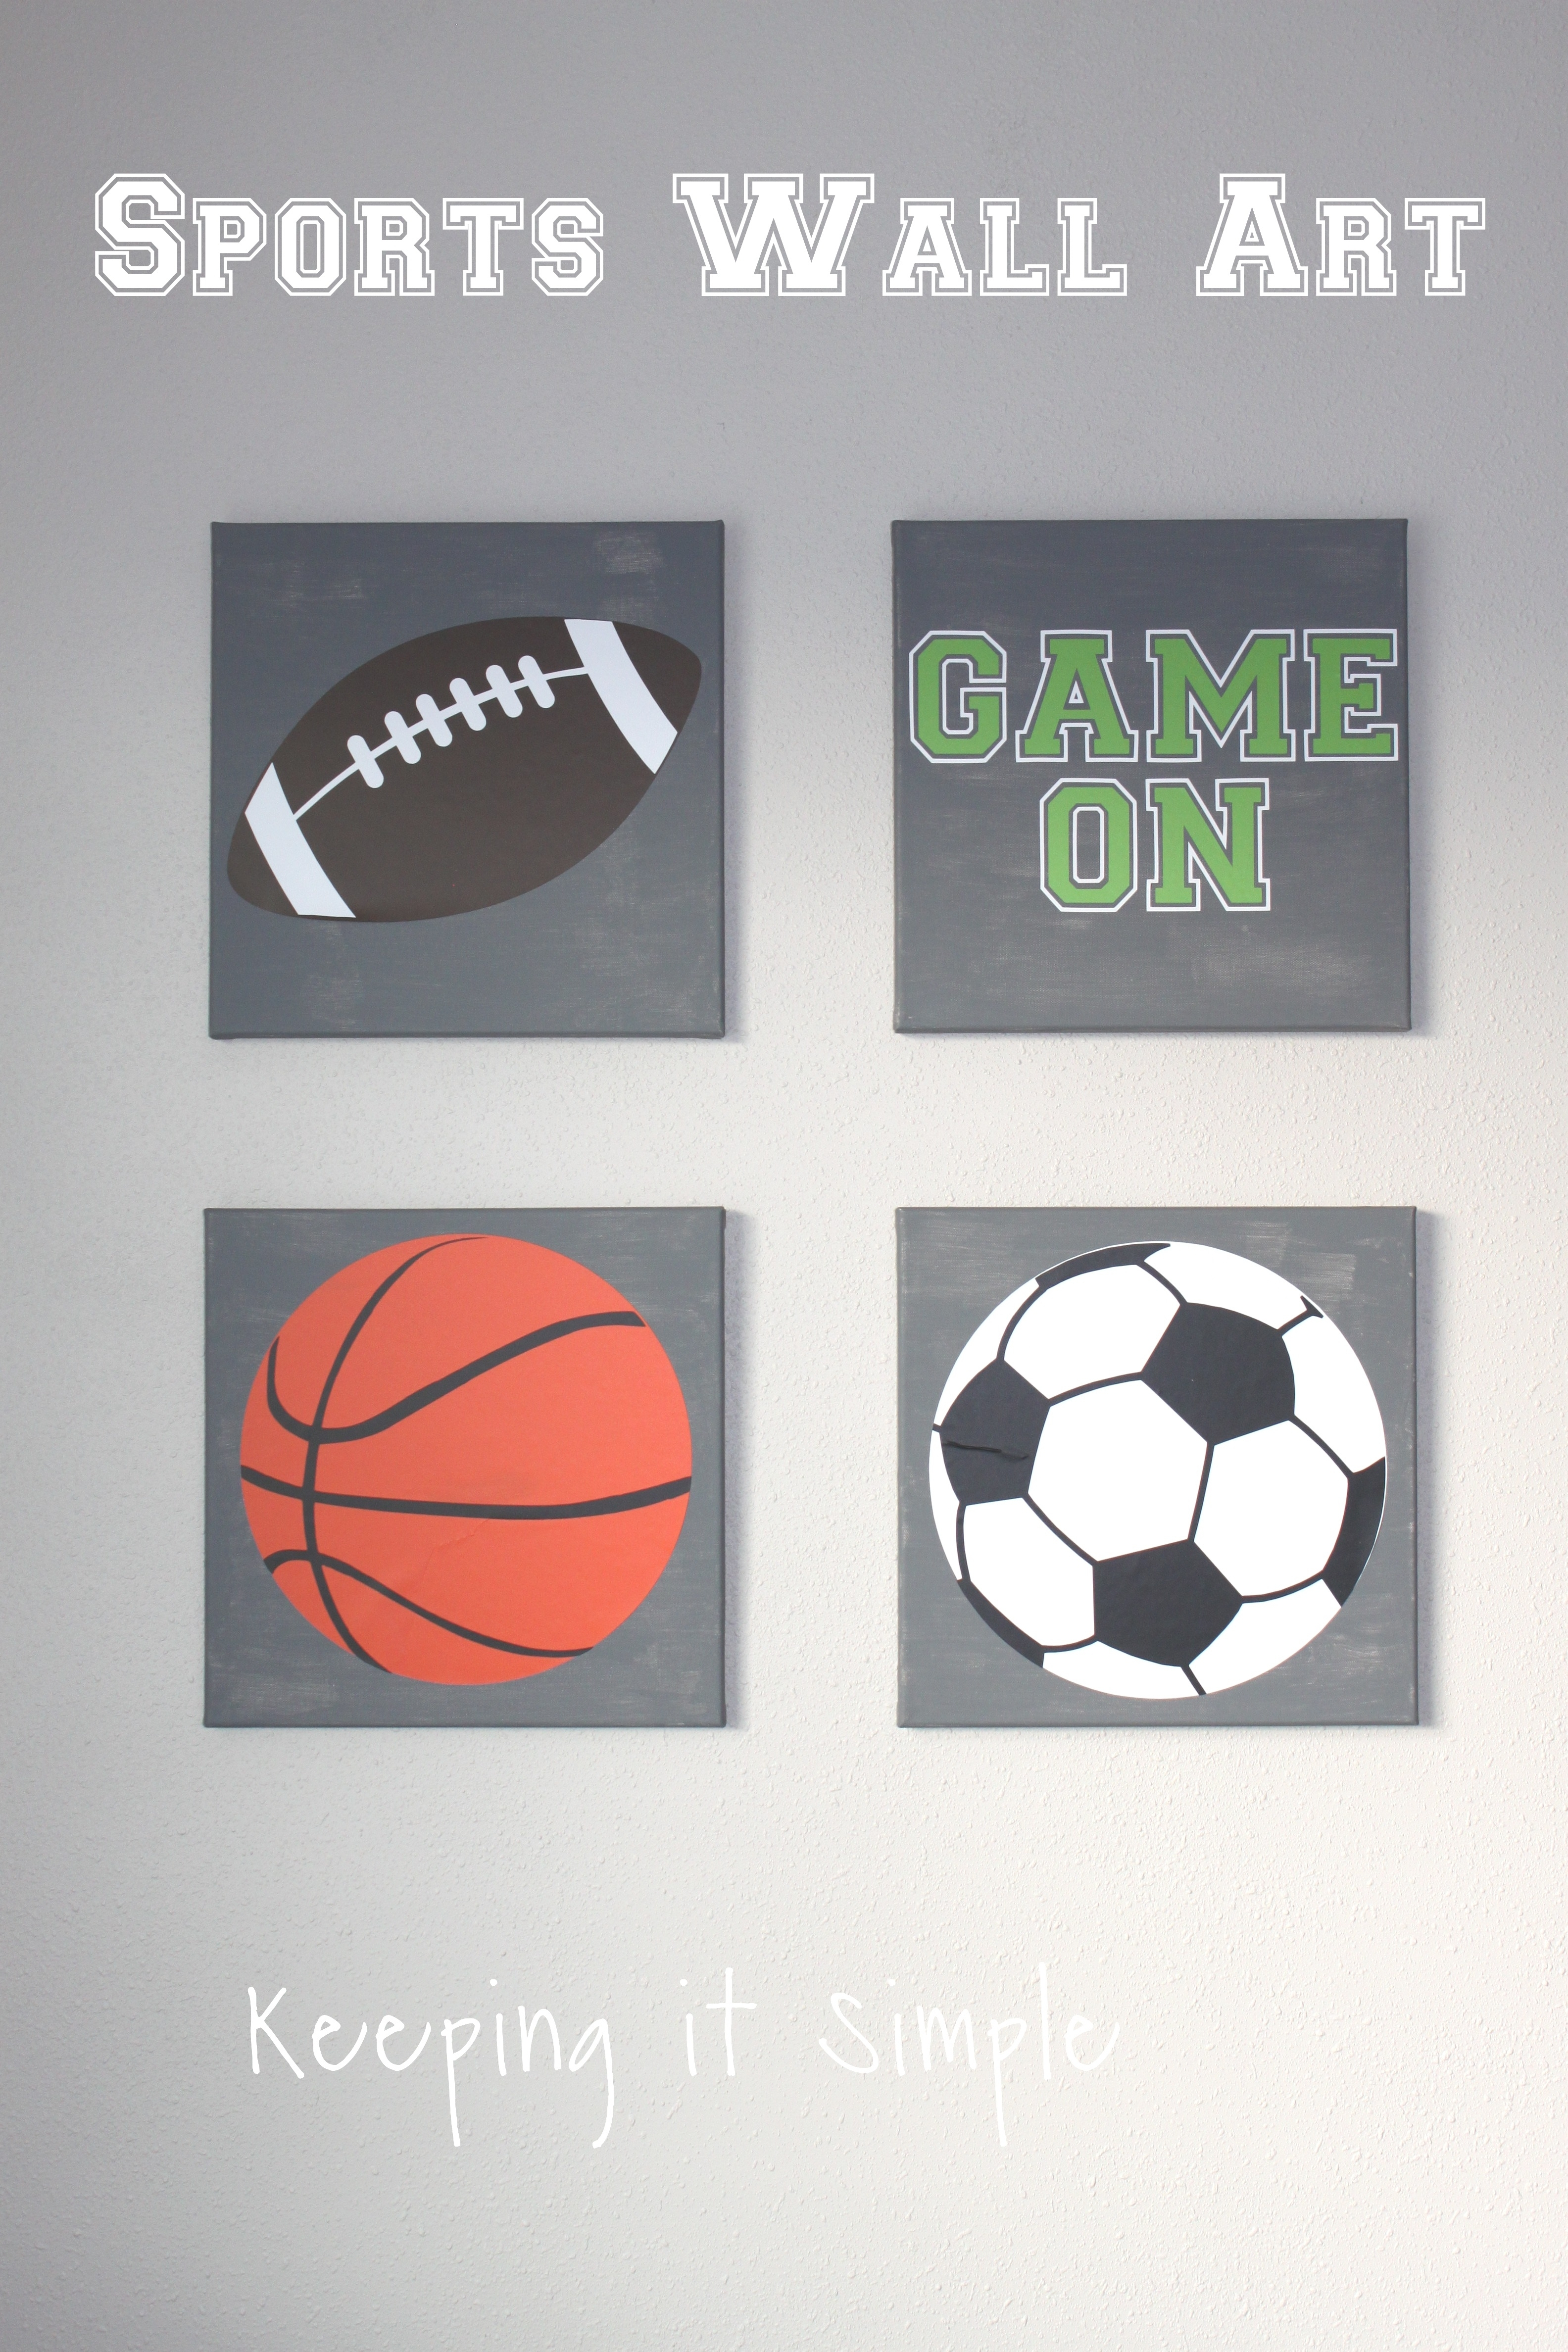 Sports Wall Art With Svg Cut File • Keeping It Simple For Most Up To Date Sports Wall Art (View 7 of 20)